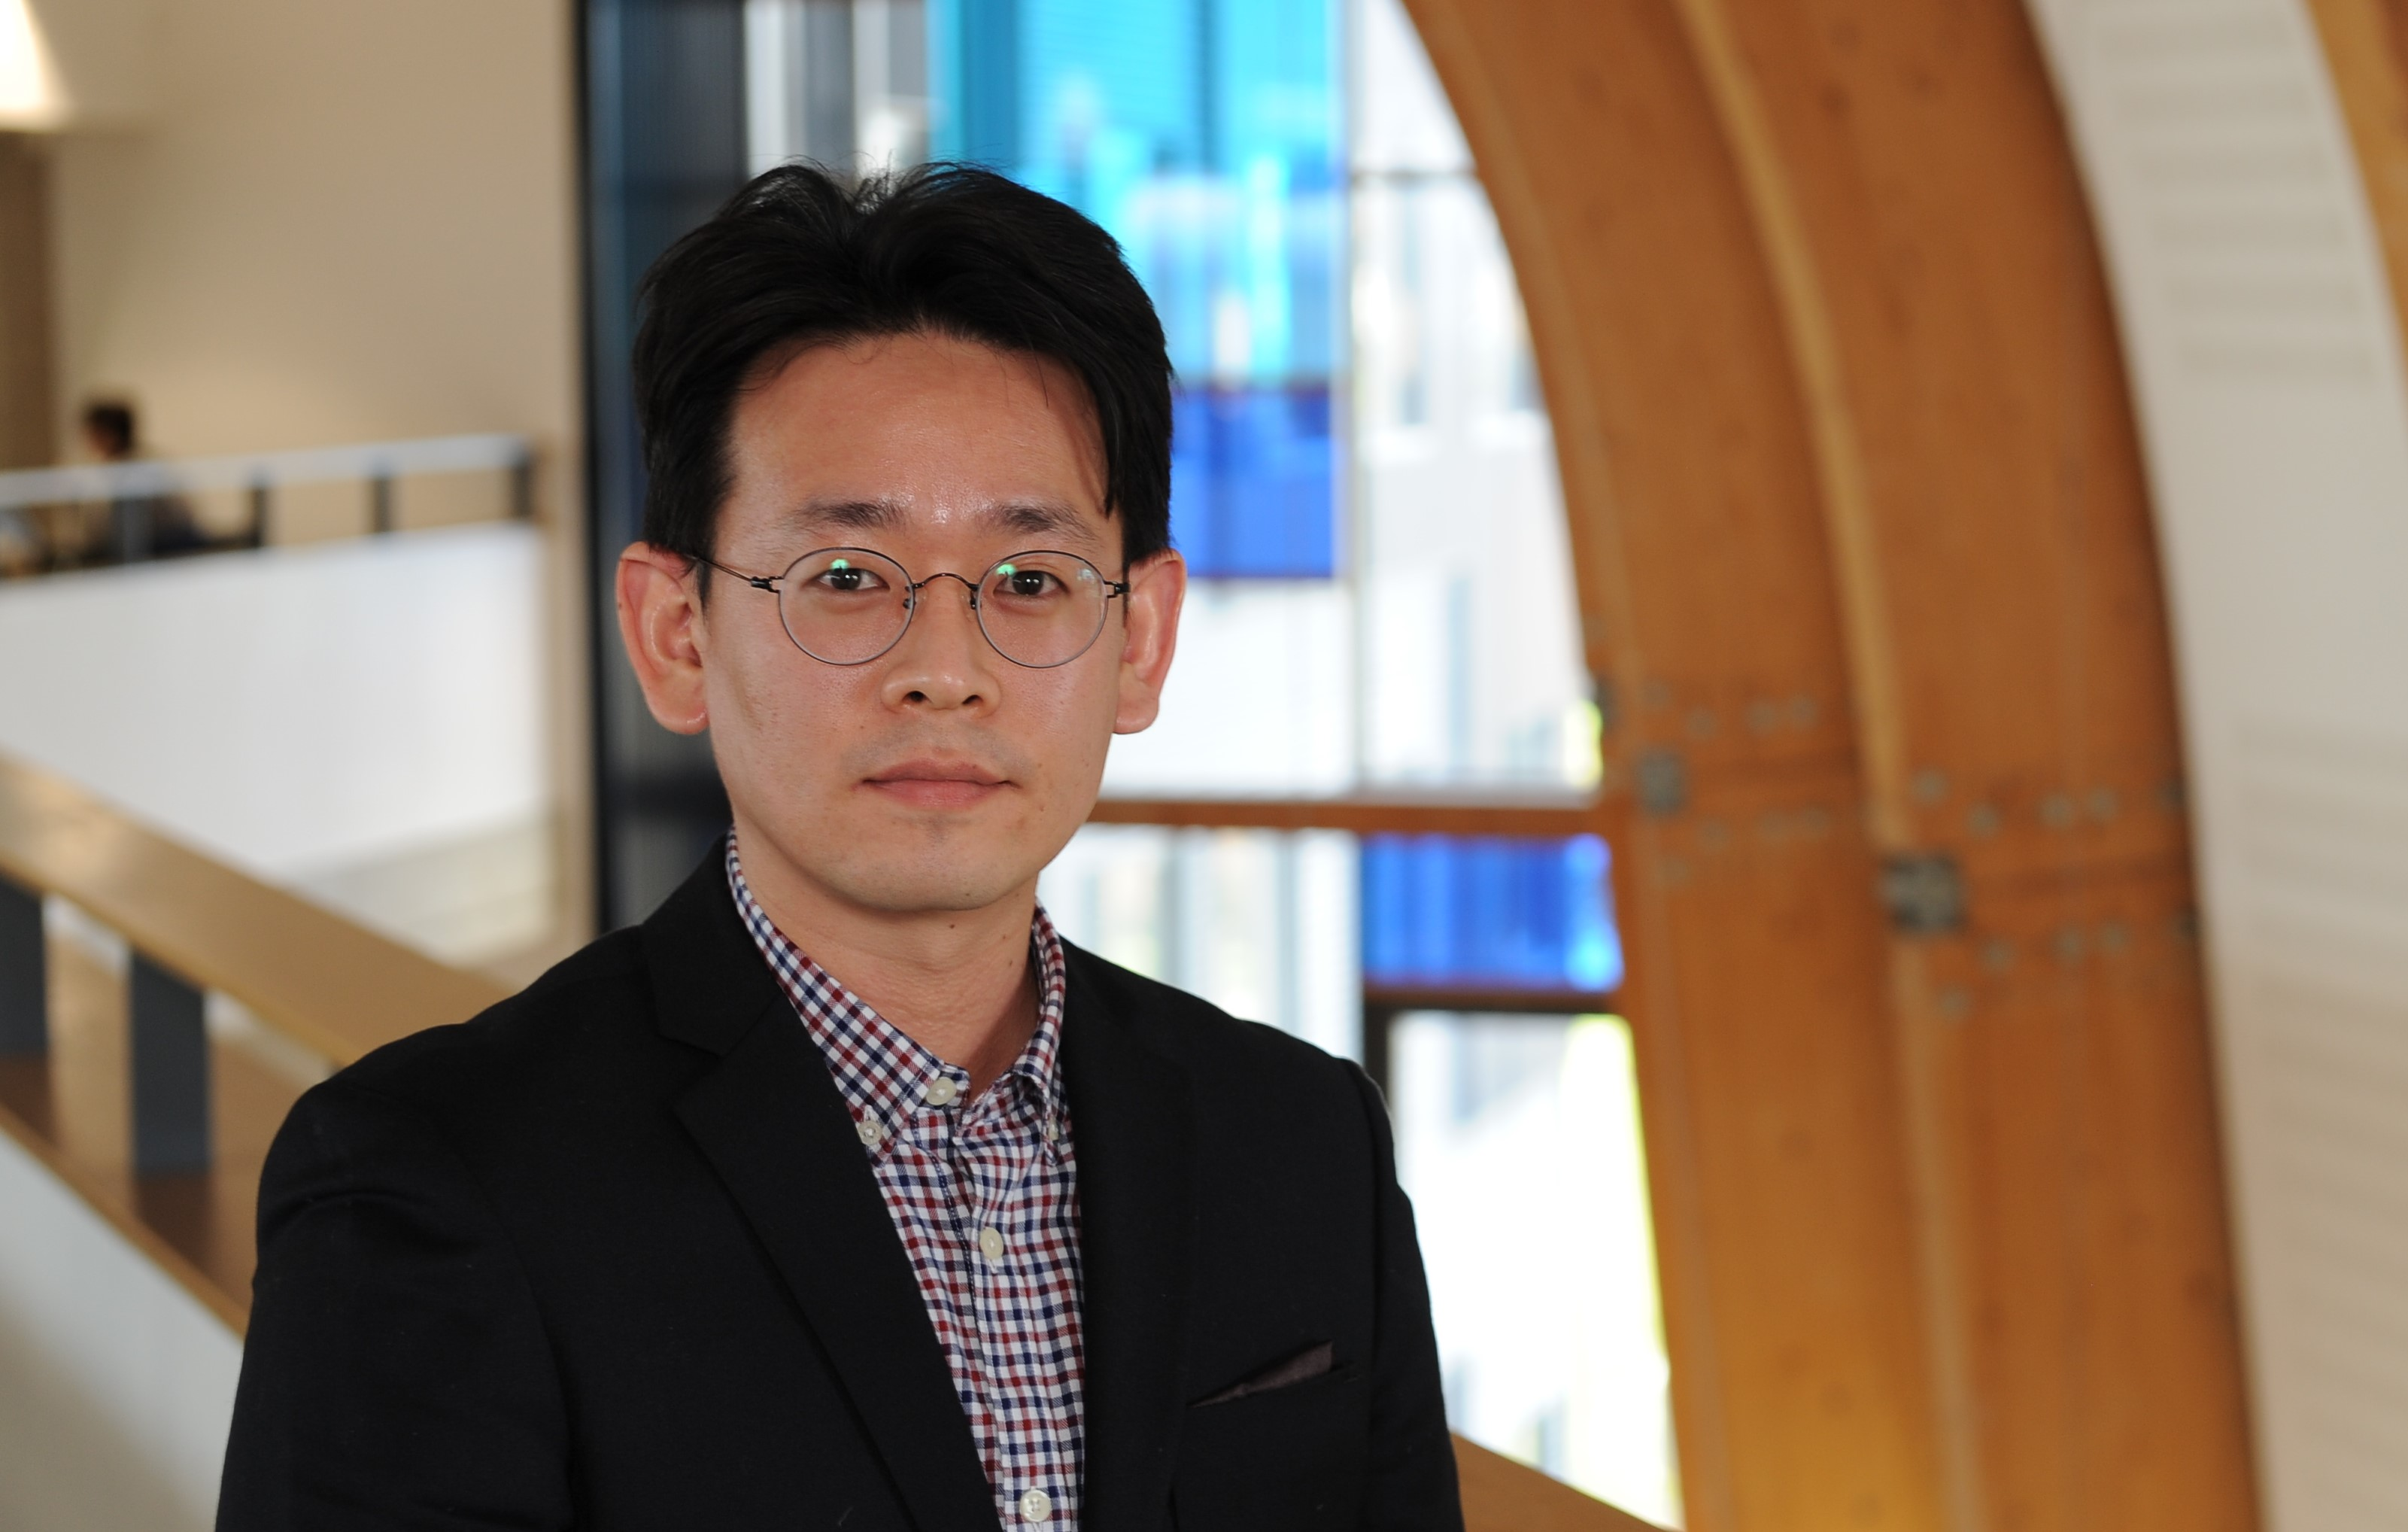 Dr Jong Min Lee's work published in the  AIB (Academy of International Business) Insights